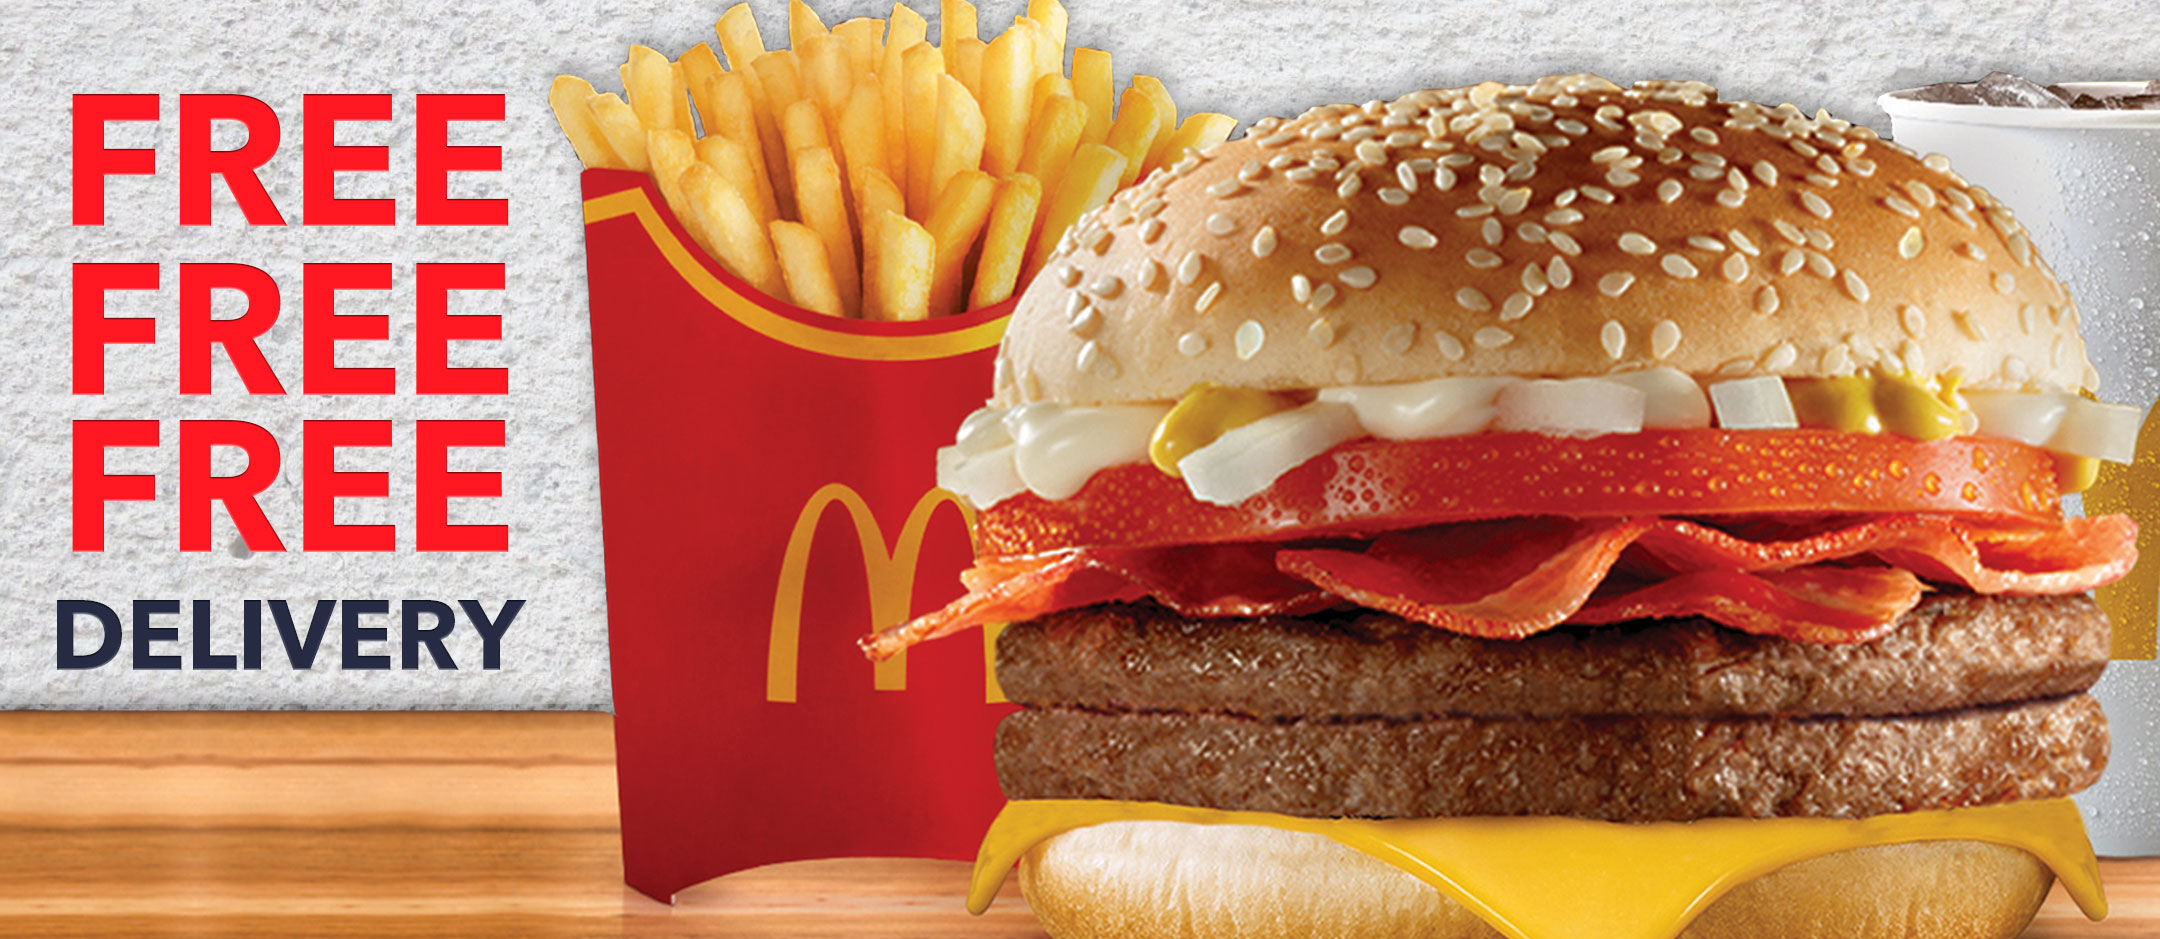 Free Delivery Mc Donald's